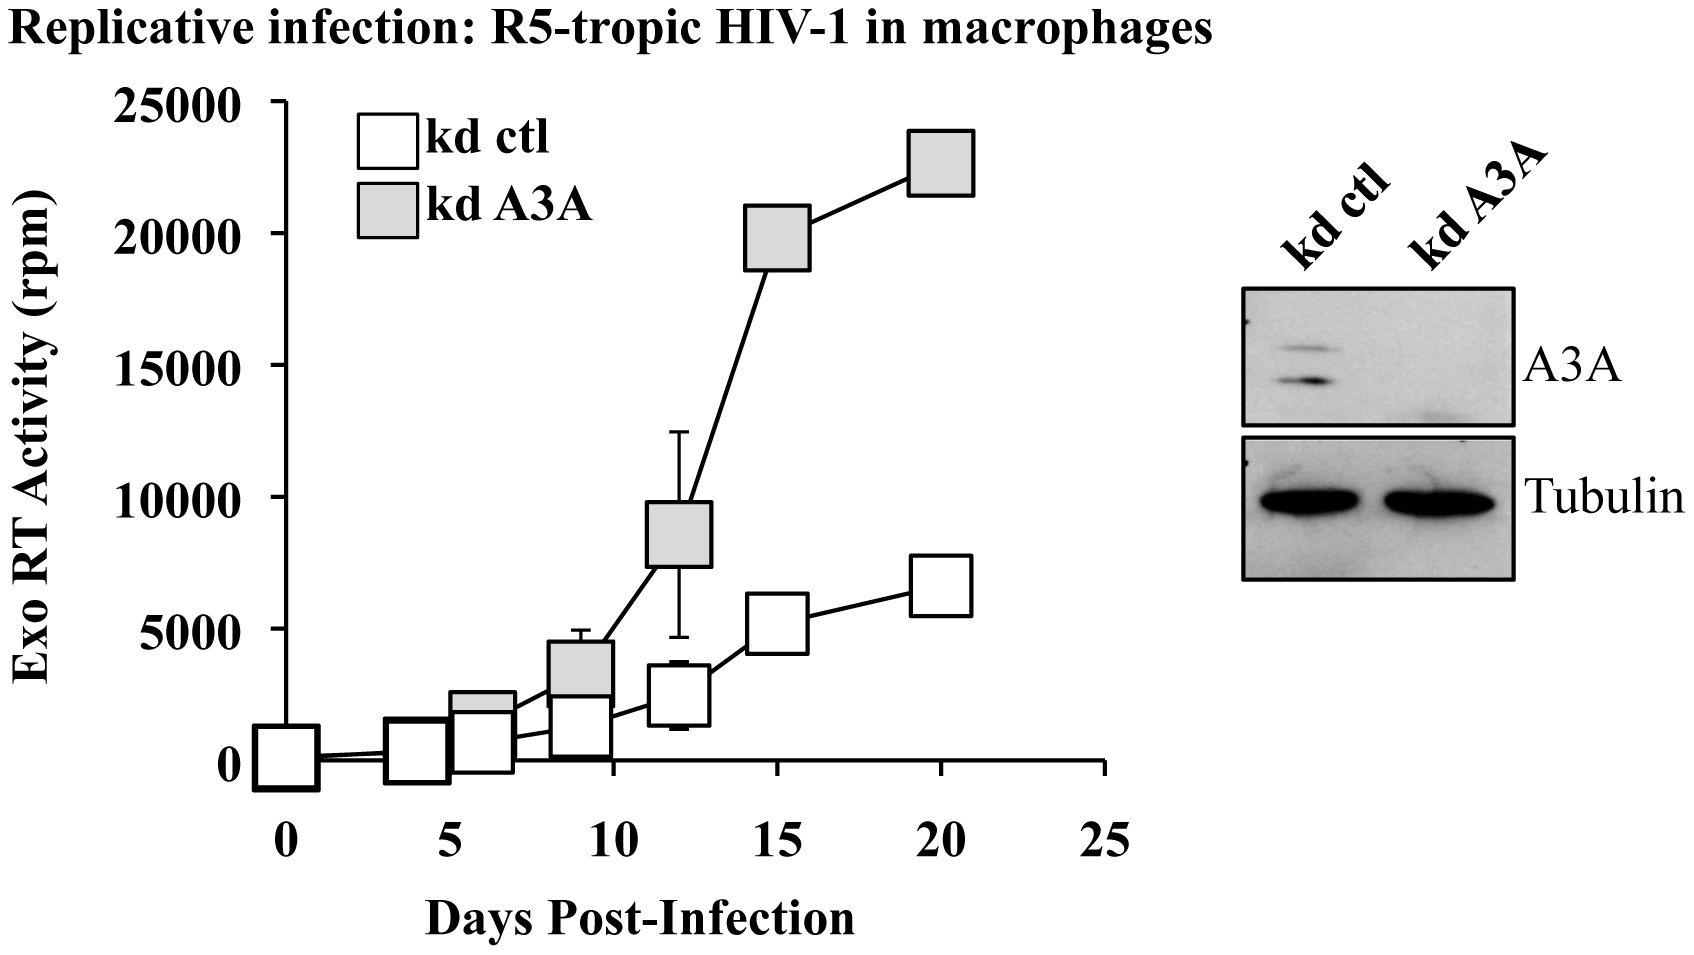 A3A silencing increases viral spread of an R5 tropic HIV-1 virus in macrophages.